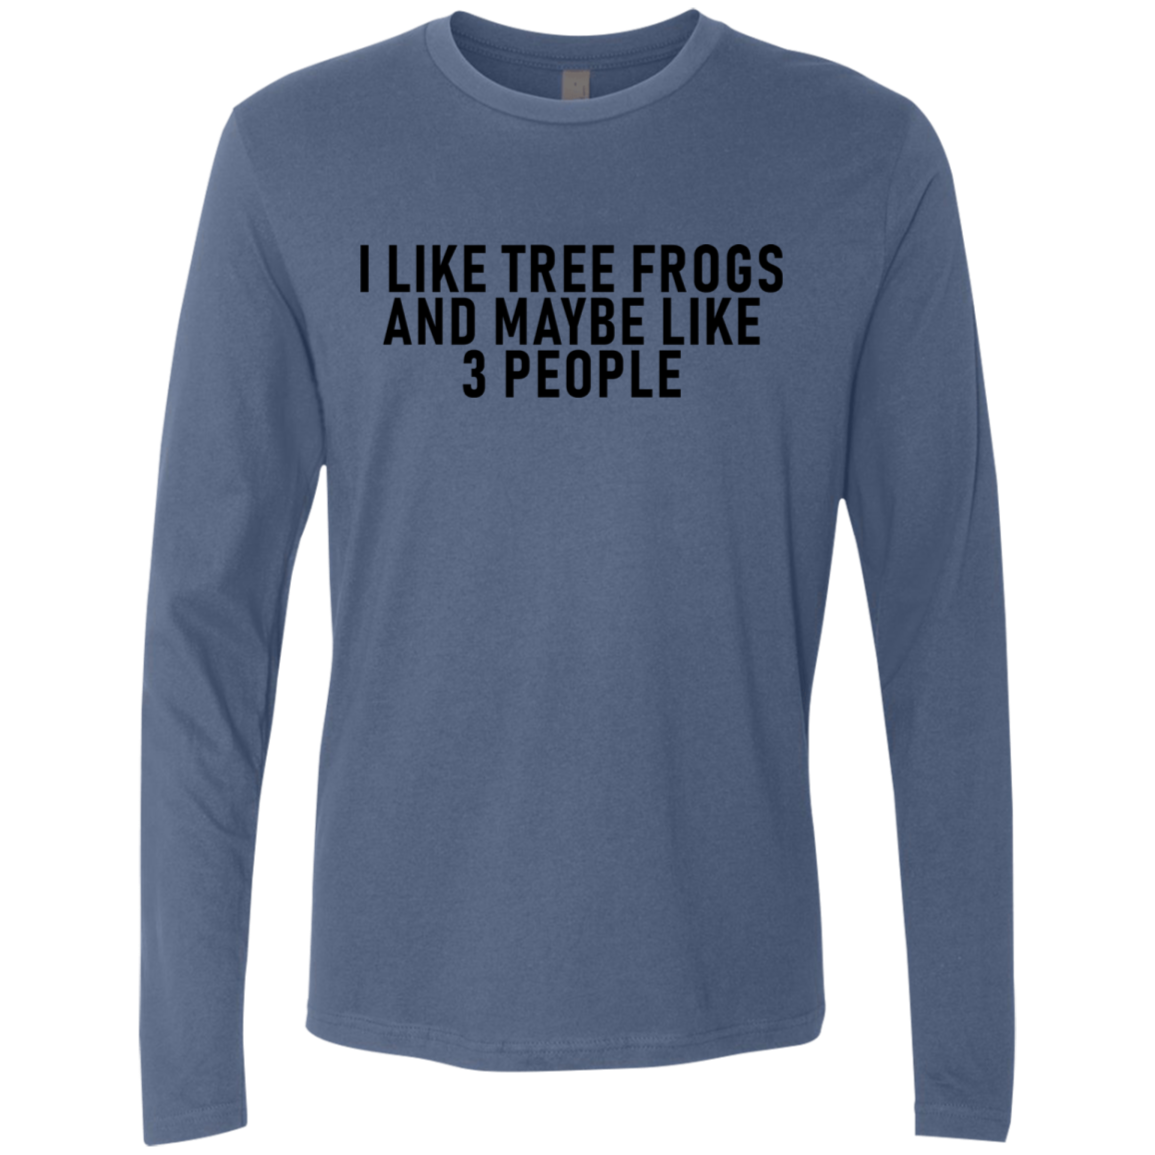 I Like Tree Frogs And Maybe 3 People Men's Long Sleeve Tee